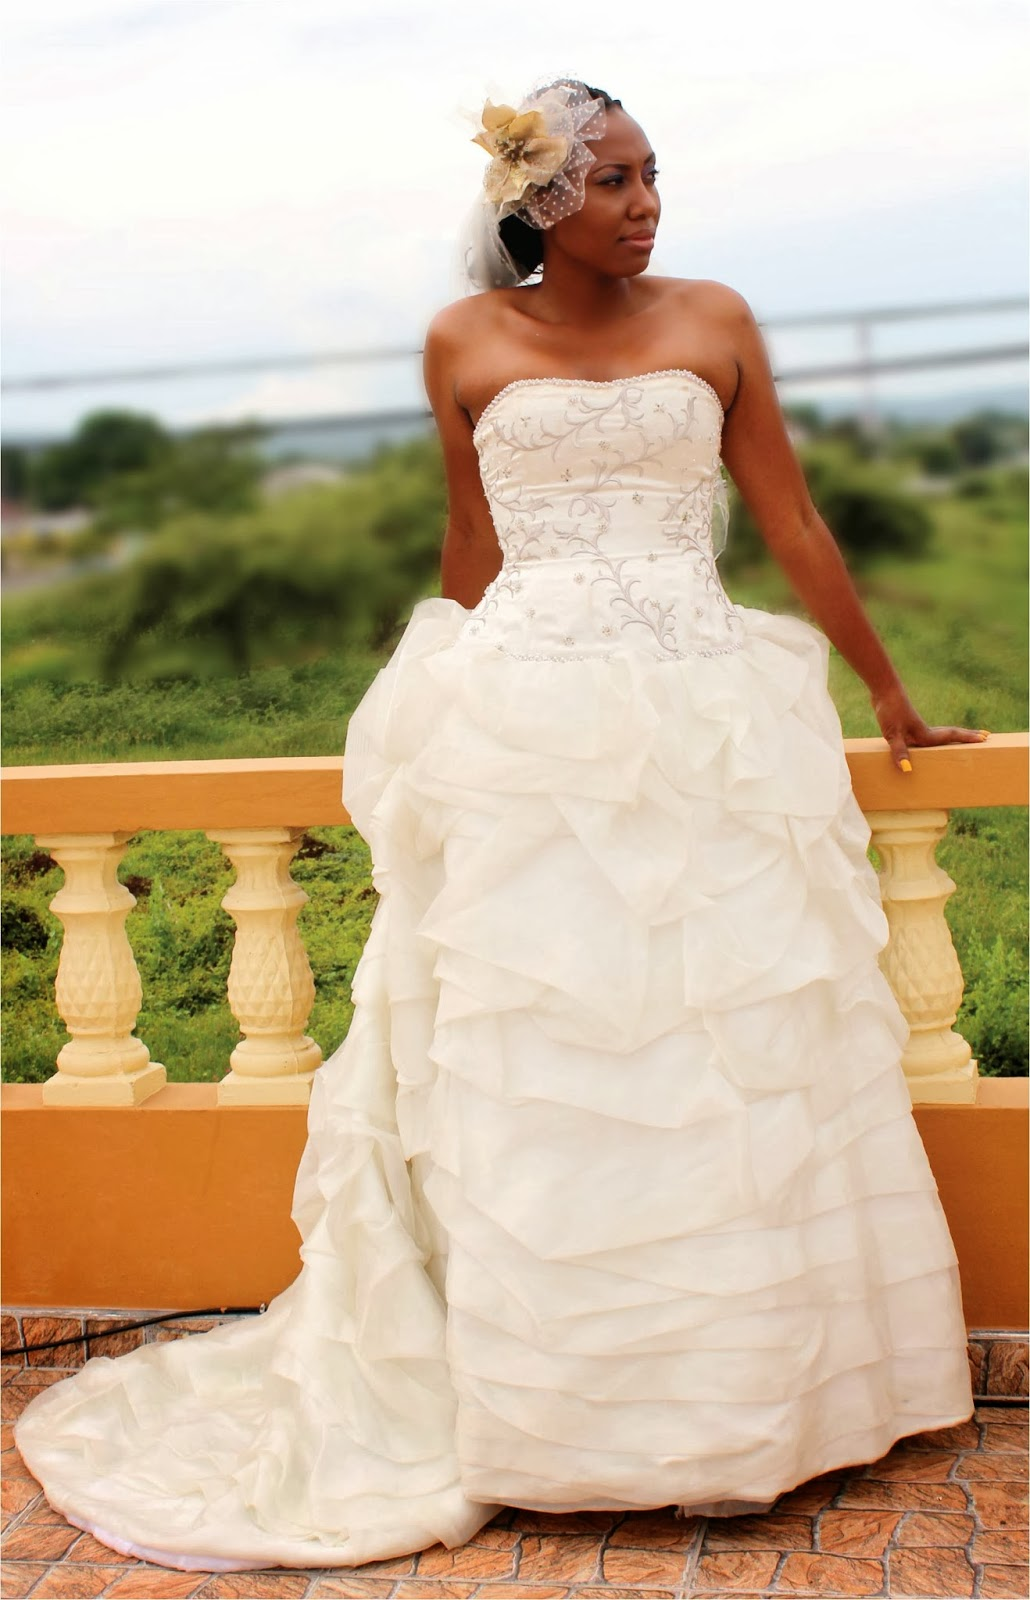 Wheat Less in Jamaica: Tying the Knot in Jamaica - Wedding Dresses ...